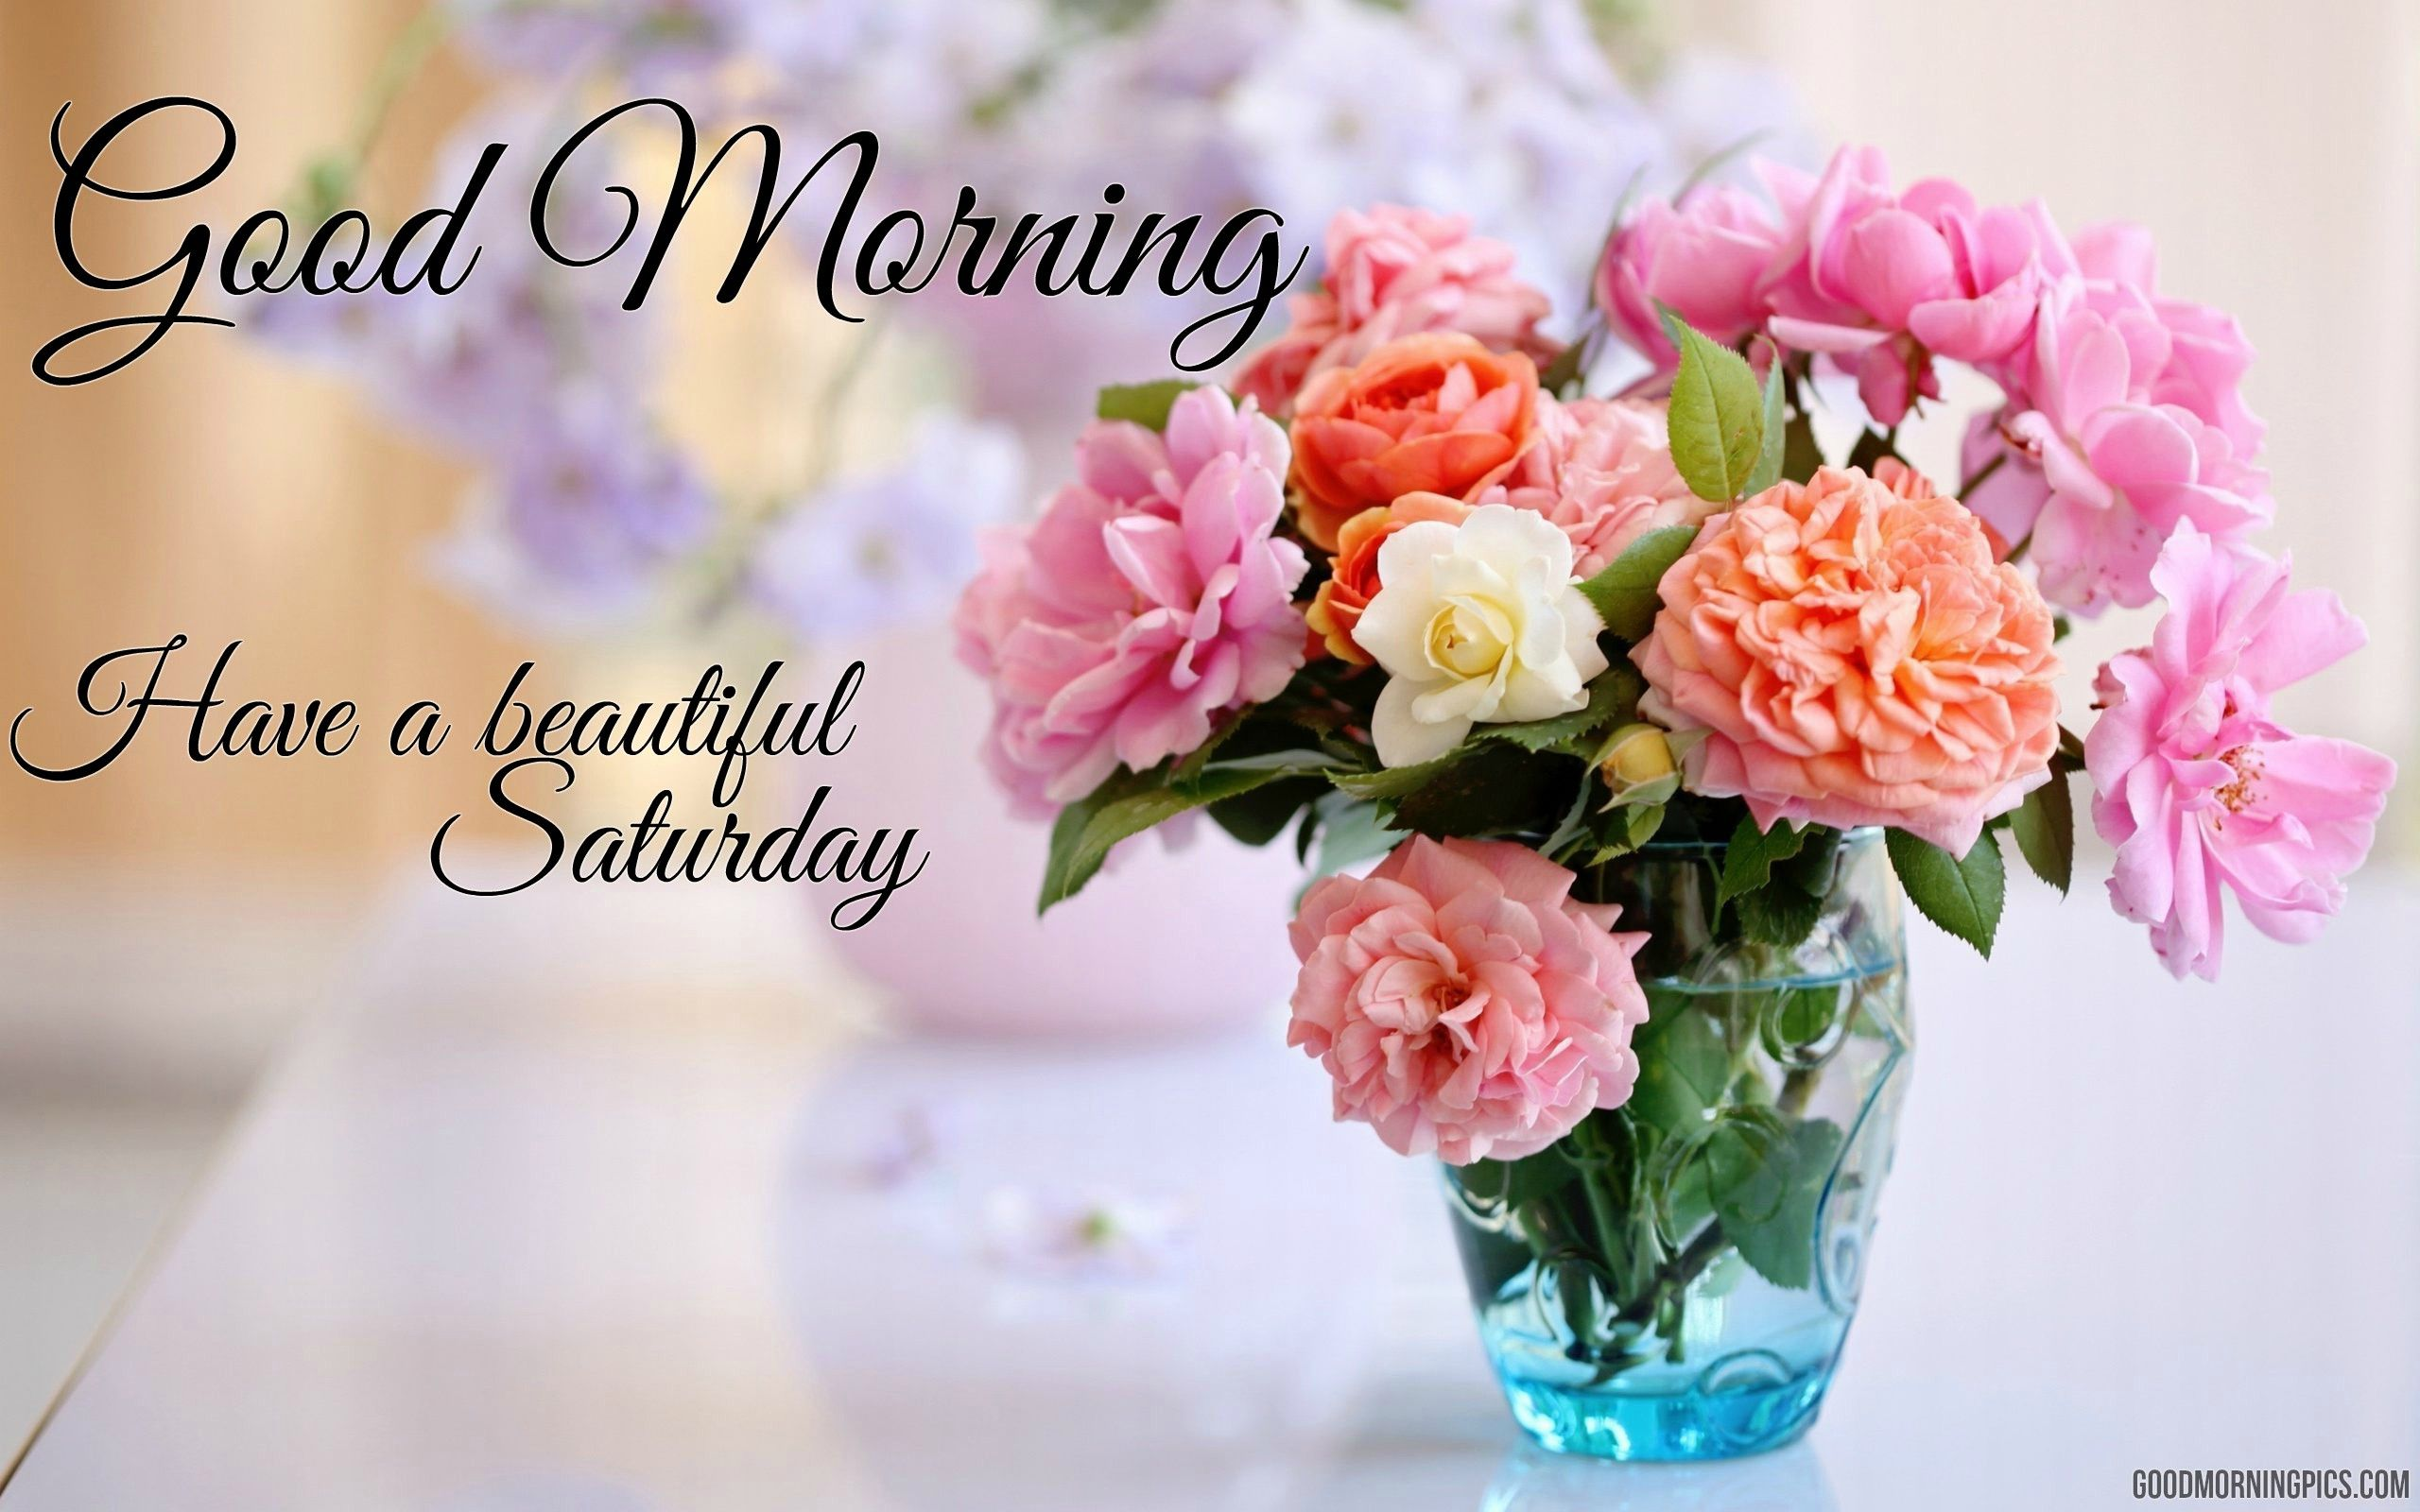 Top good morning images with beautiful flowers and quotes 669b77c1aaf1dc075f44ddf e90e izmirmasajfo